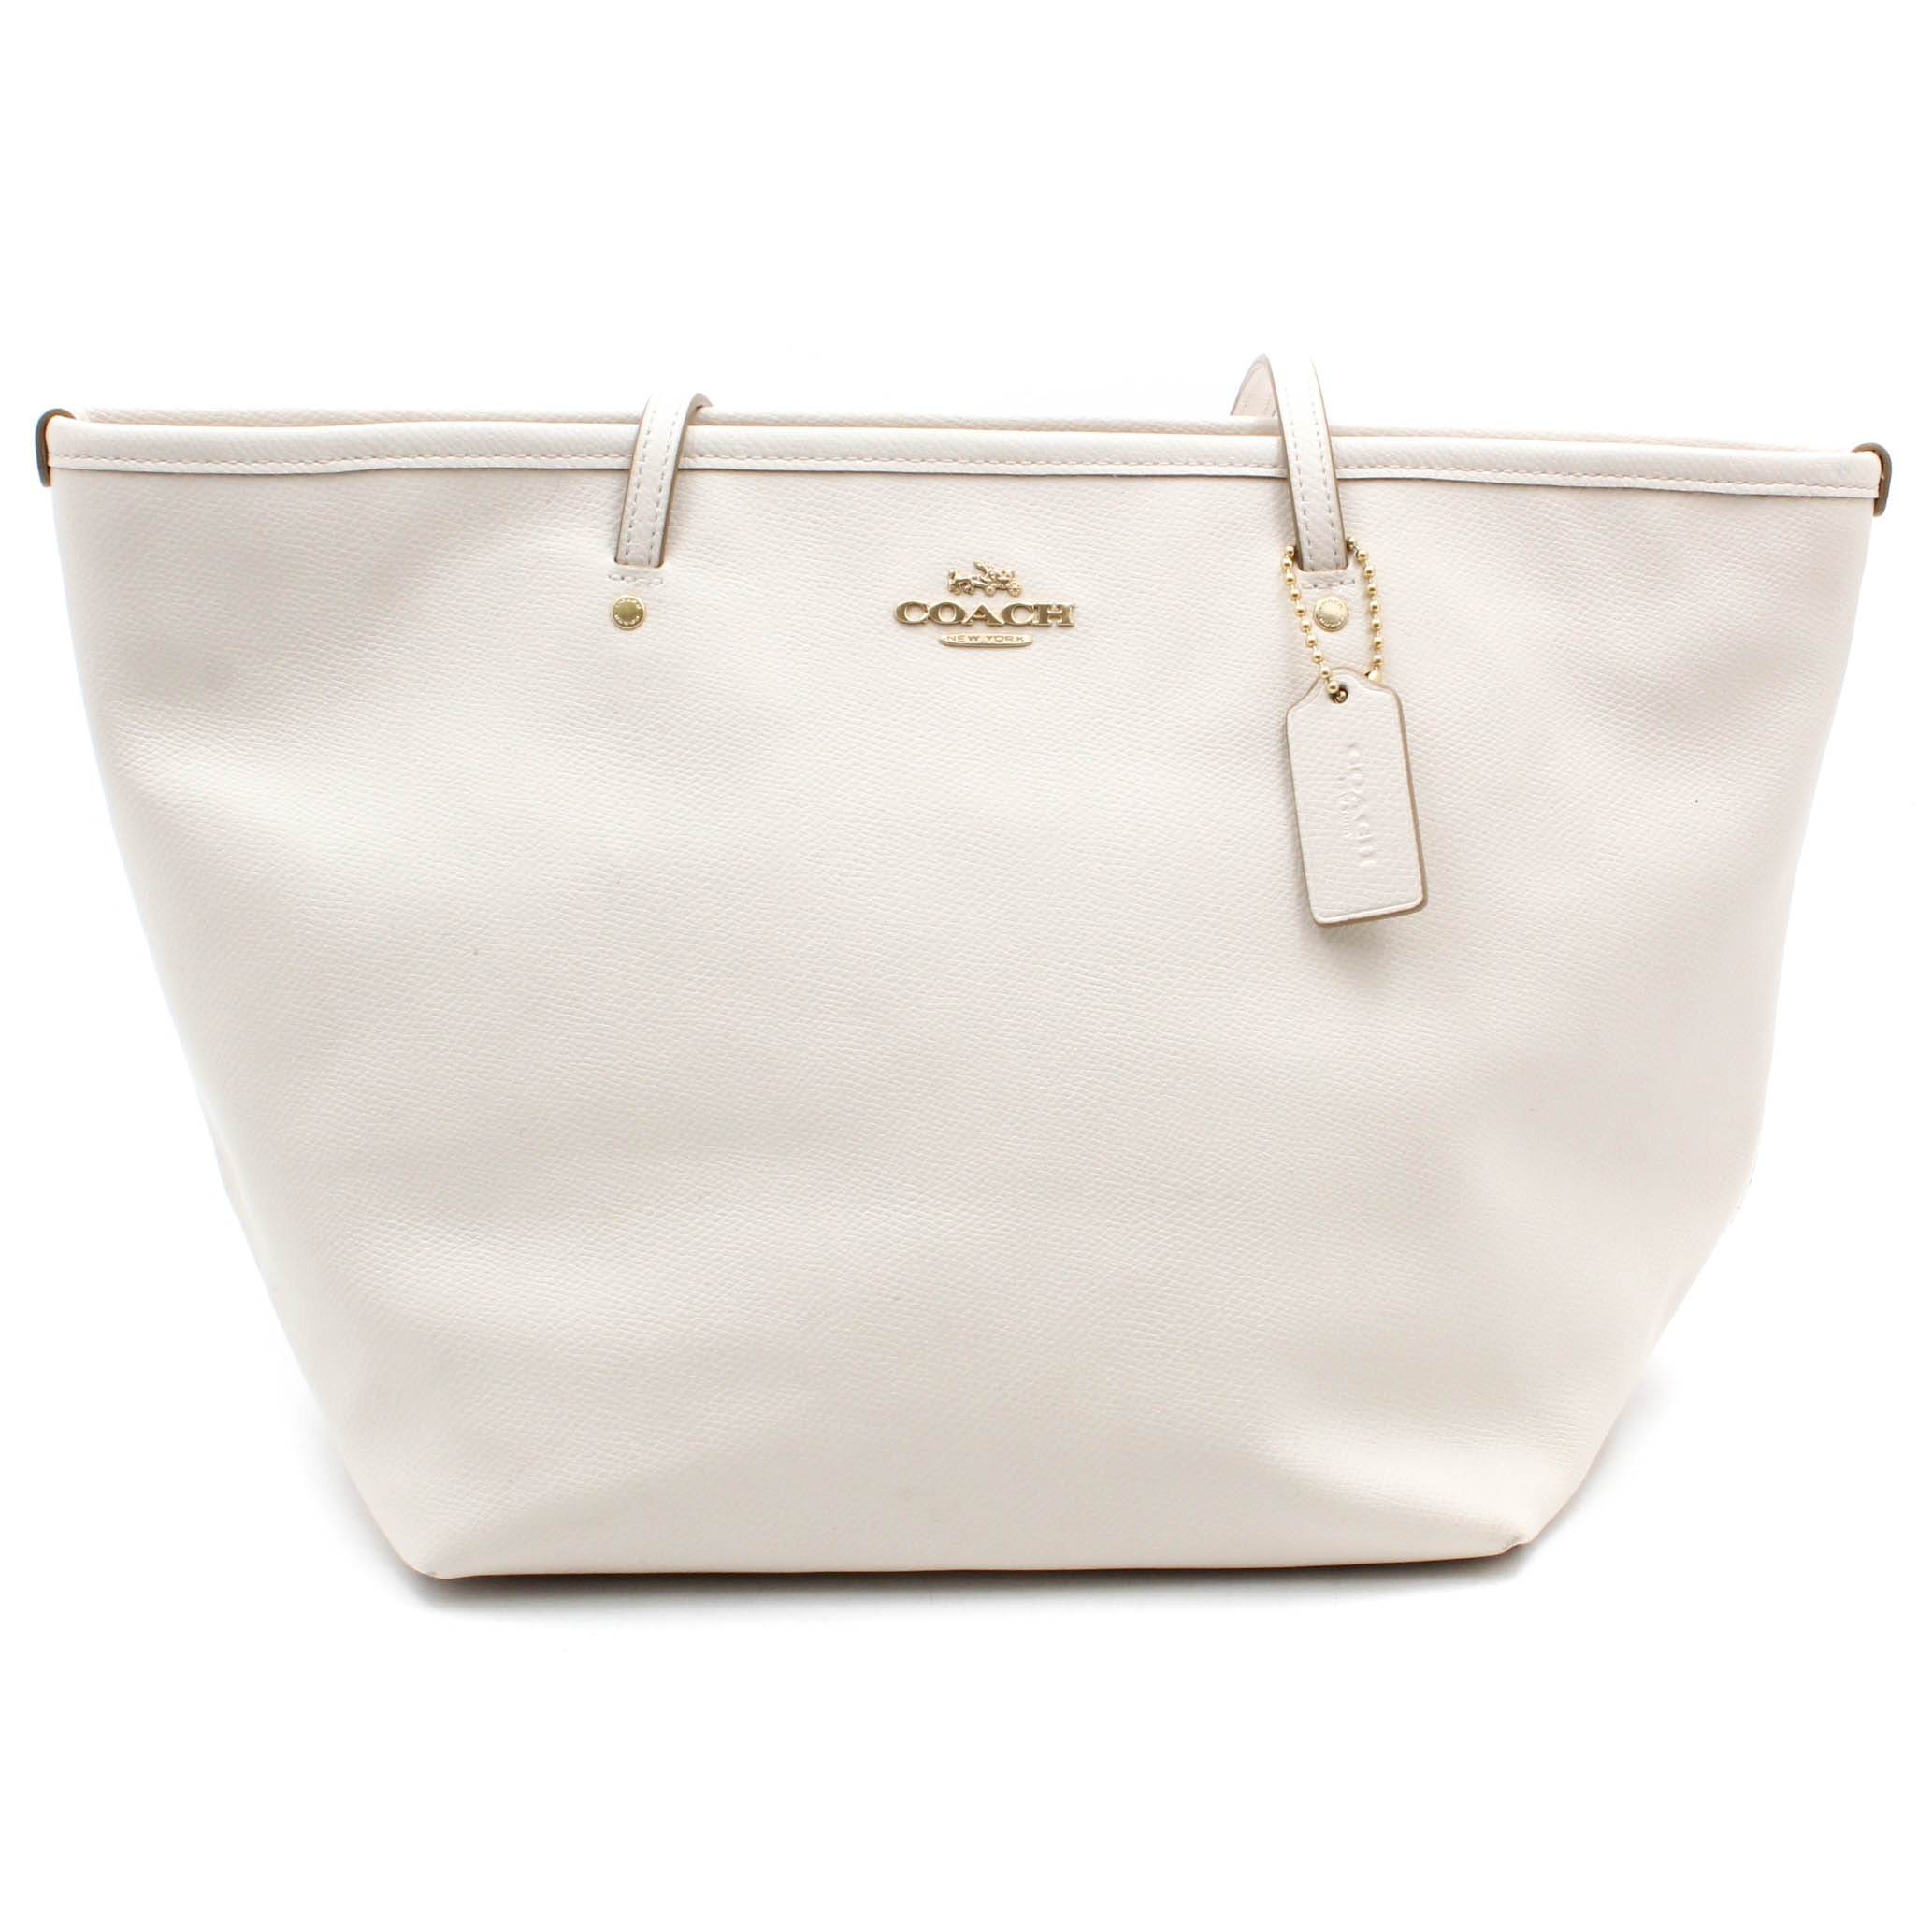 Coach Street Zip Tote White Leather Shoulder Bag